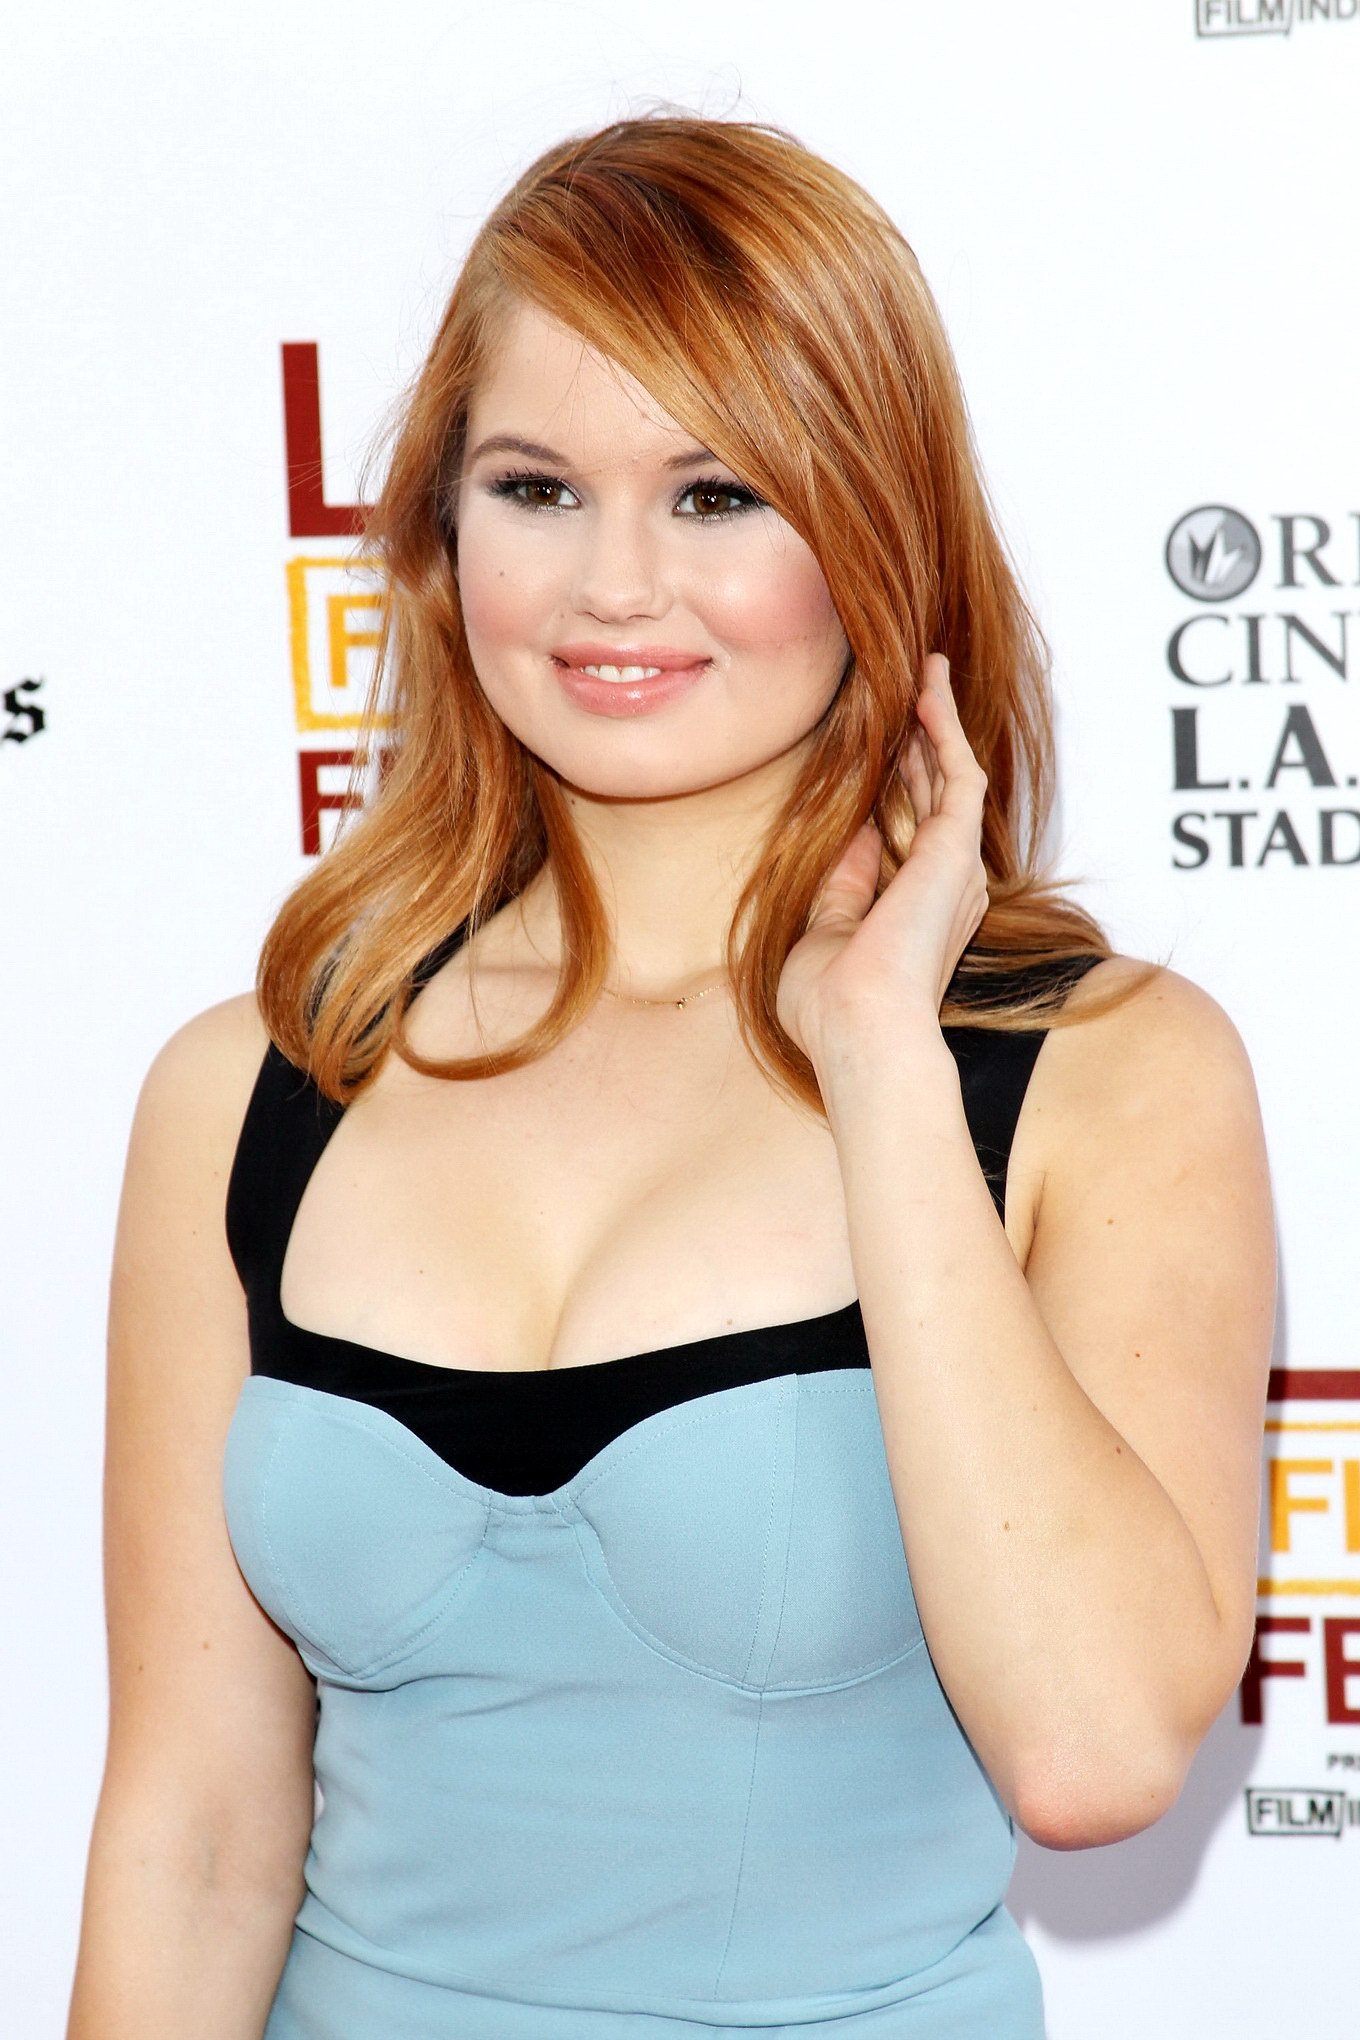 Debby ryan double penetrated naked, pictures of couples resort jamacia